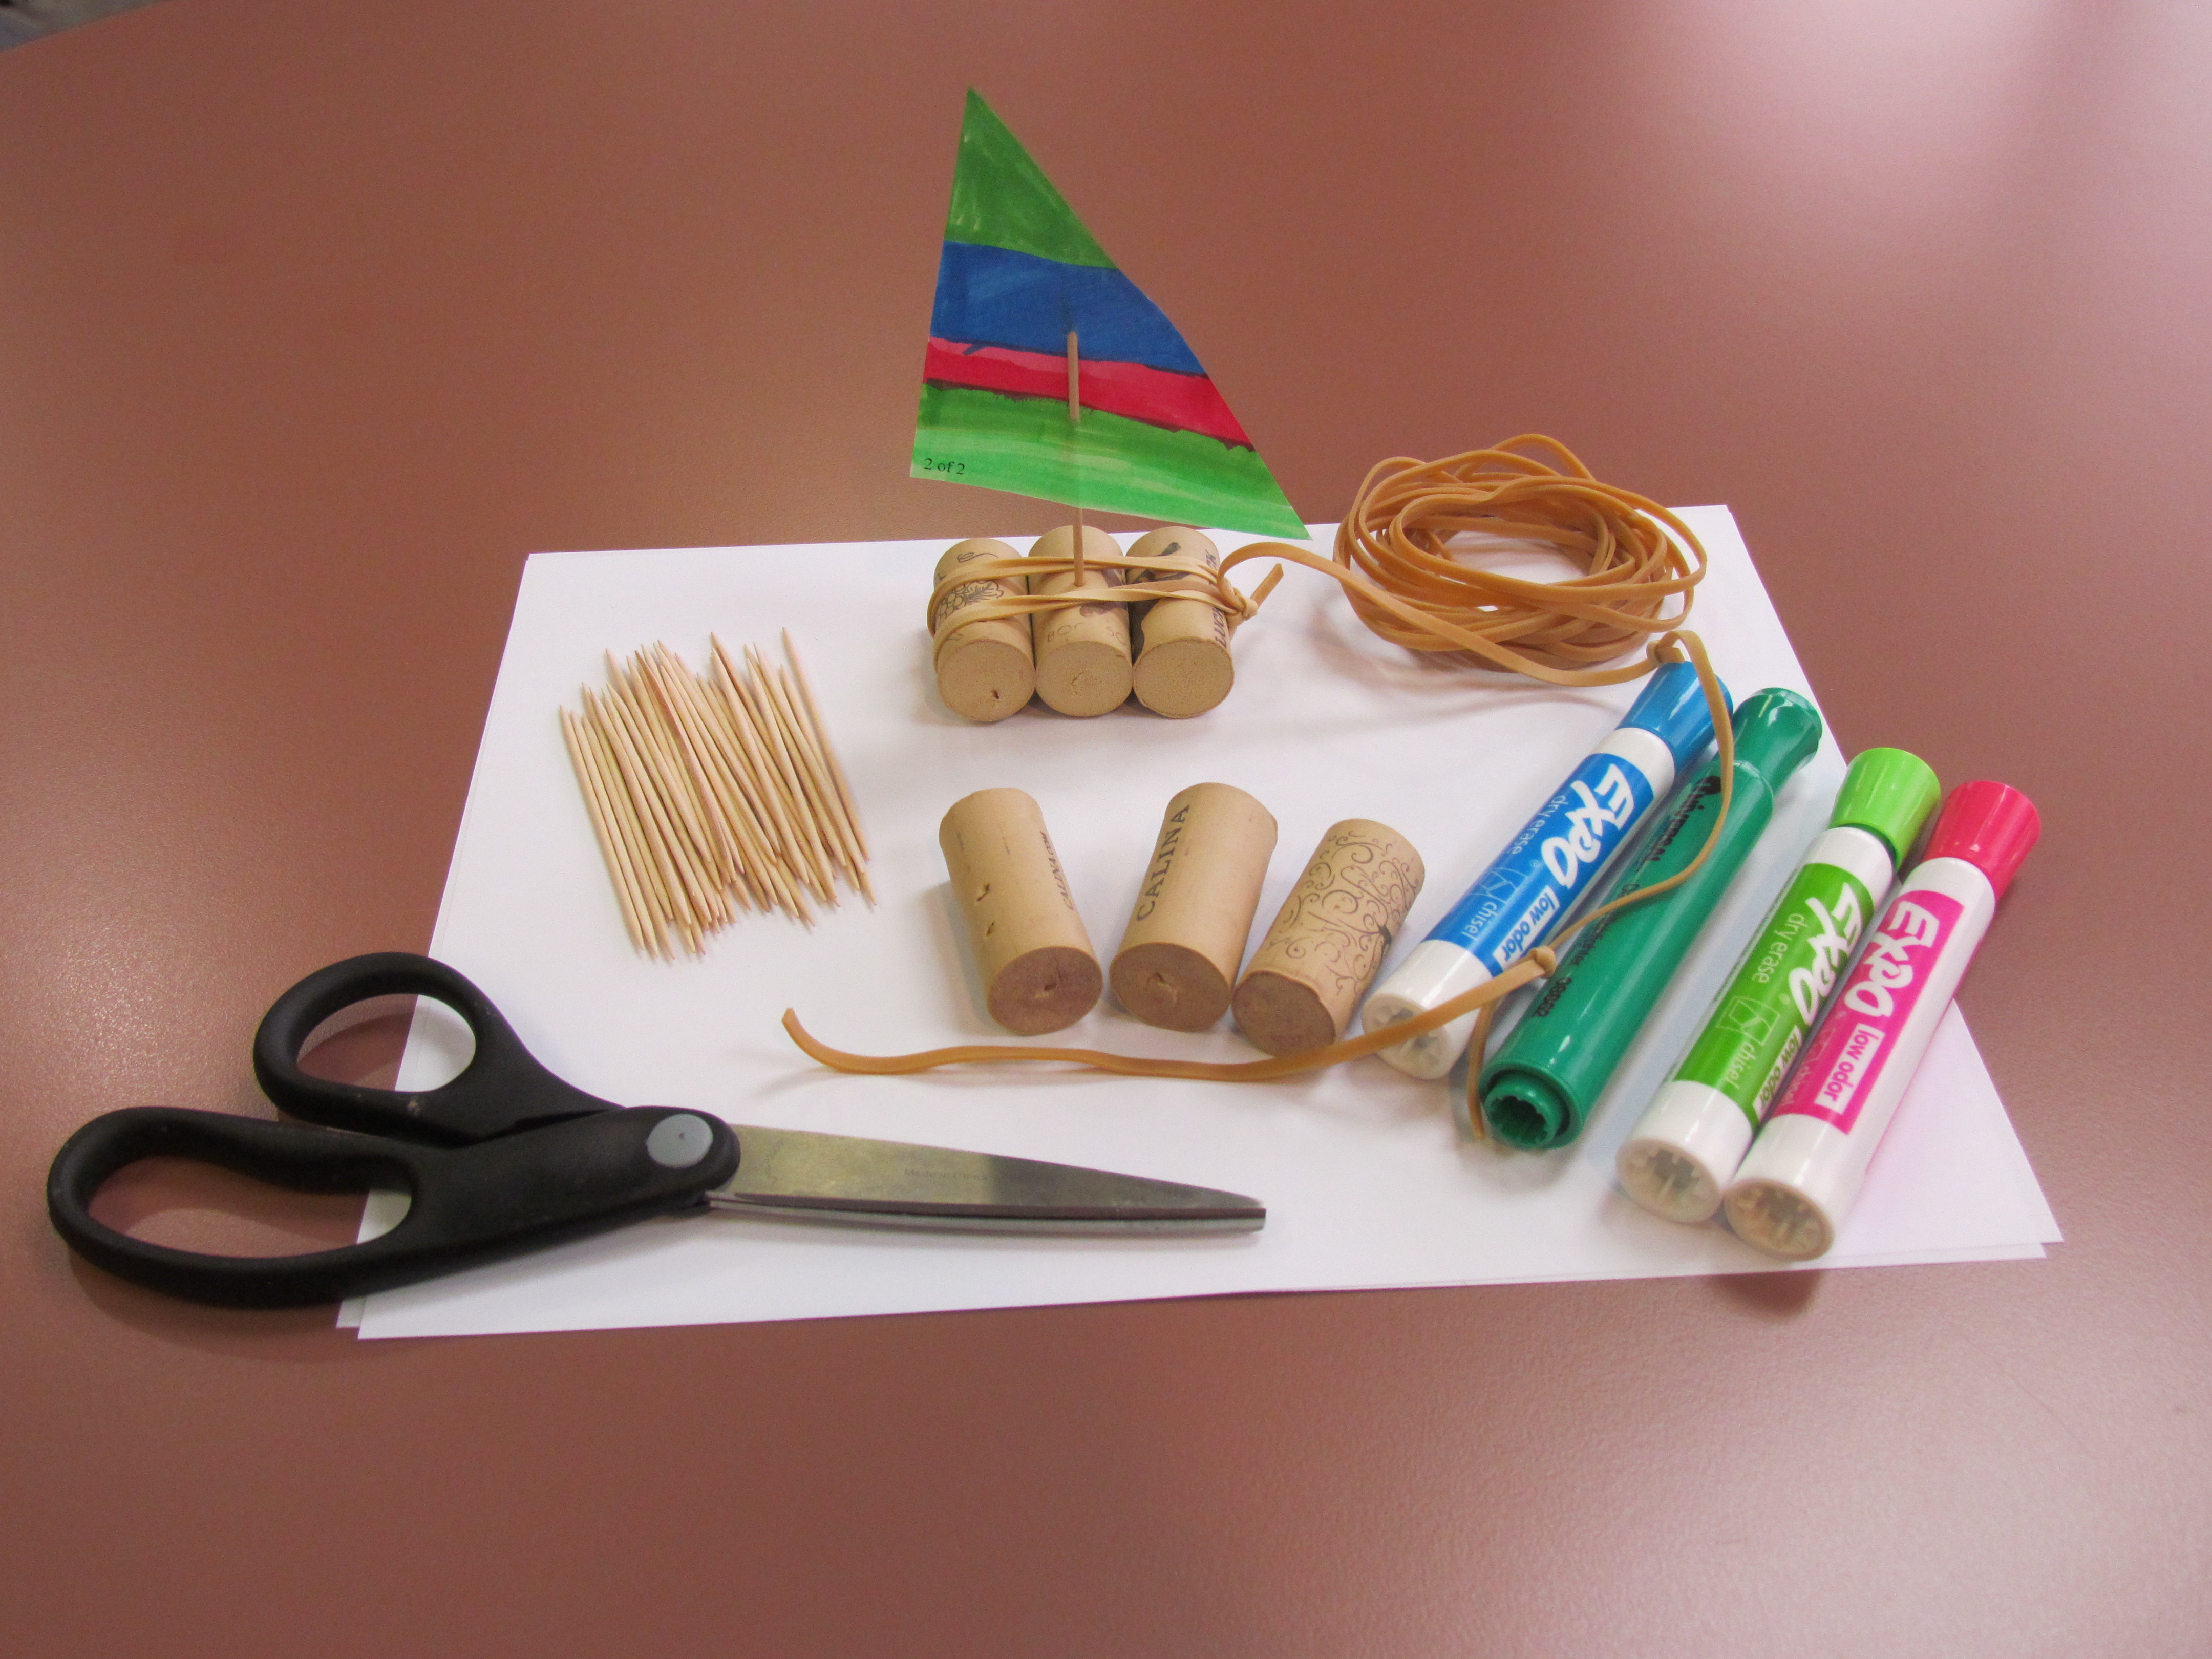 toy boat craft supplies